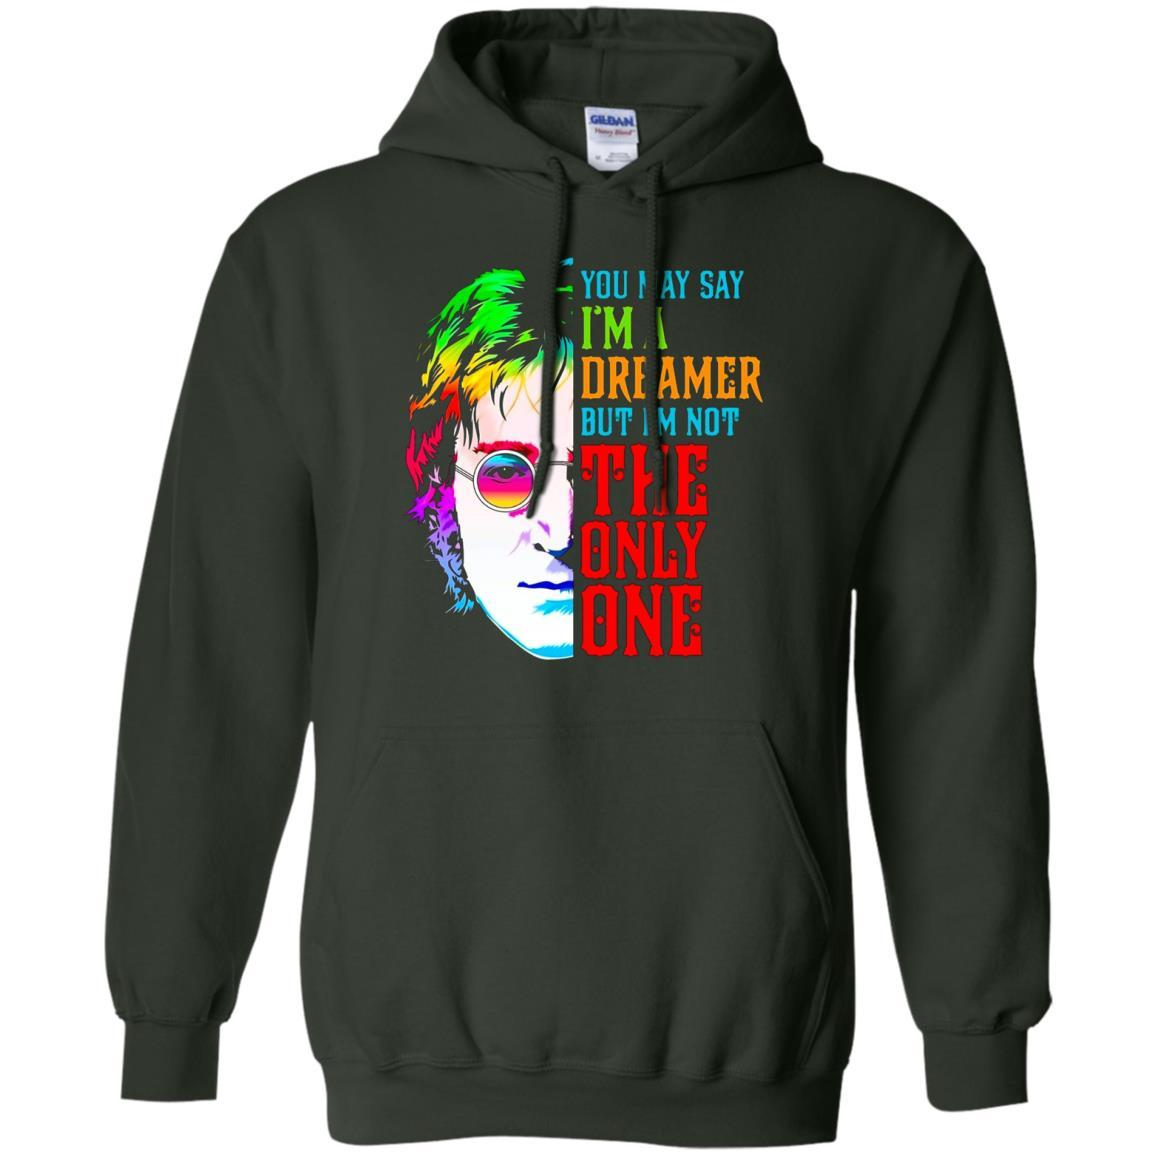 You May Say I'm Dreamer But I'm Not The Only One - Pullover Hoodie Forest Green / 5XL